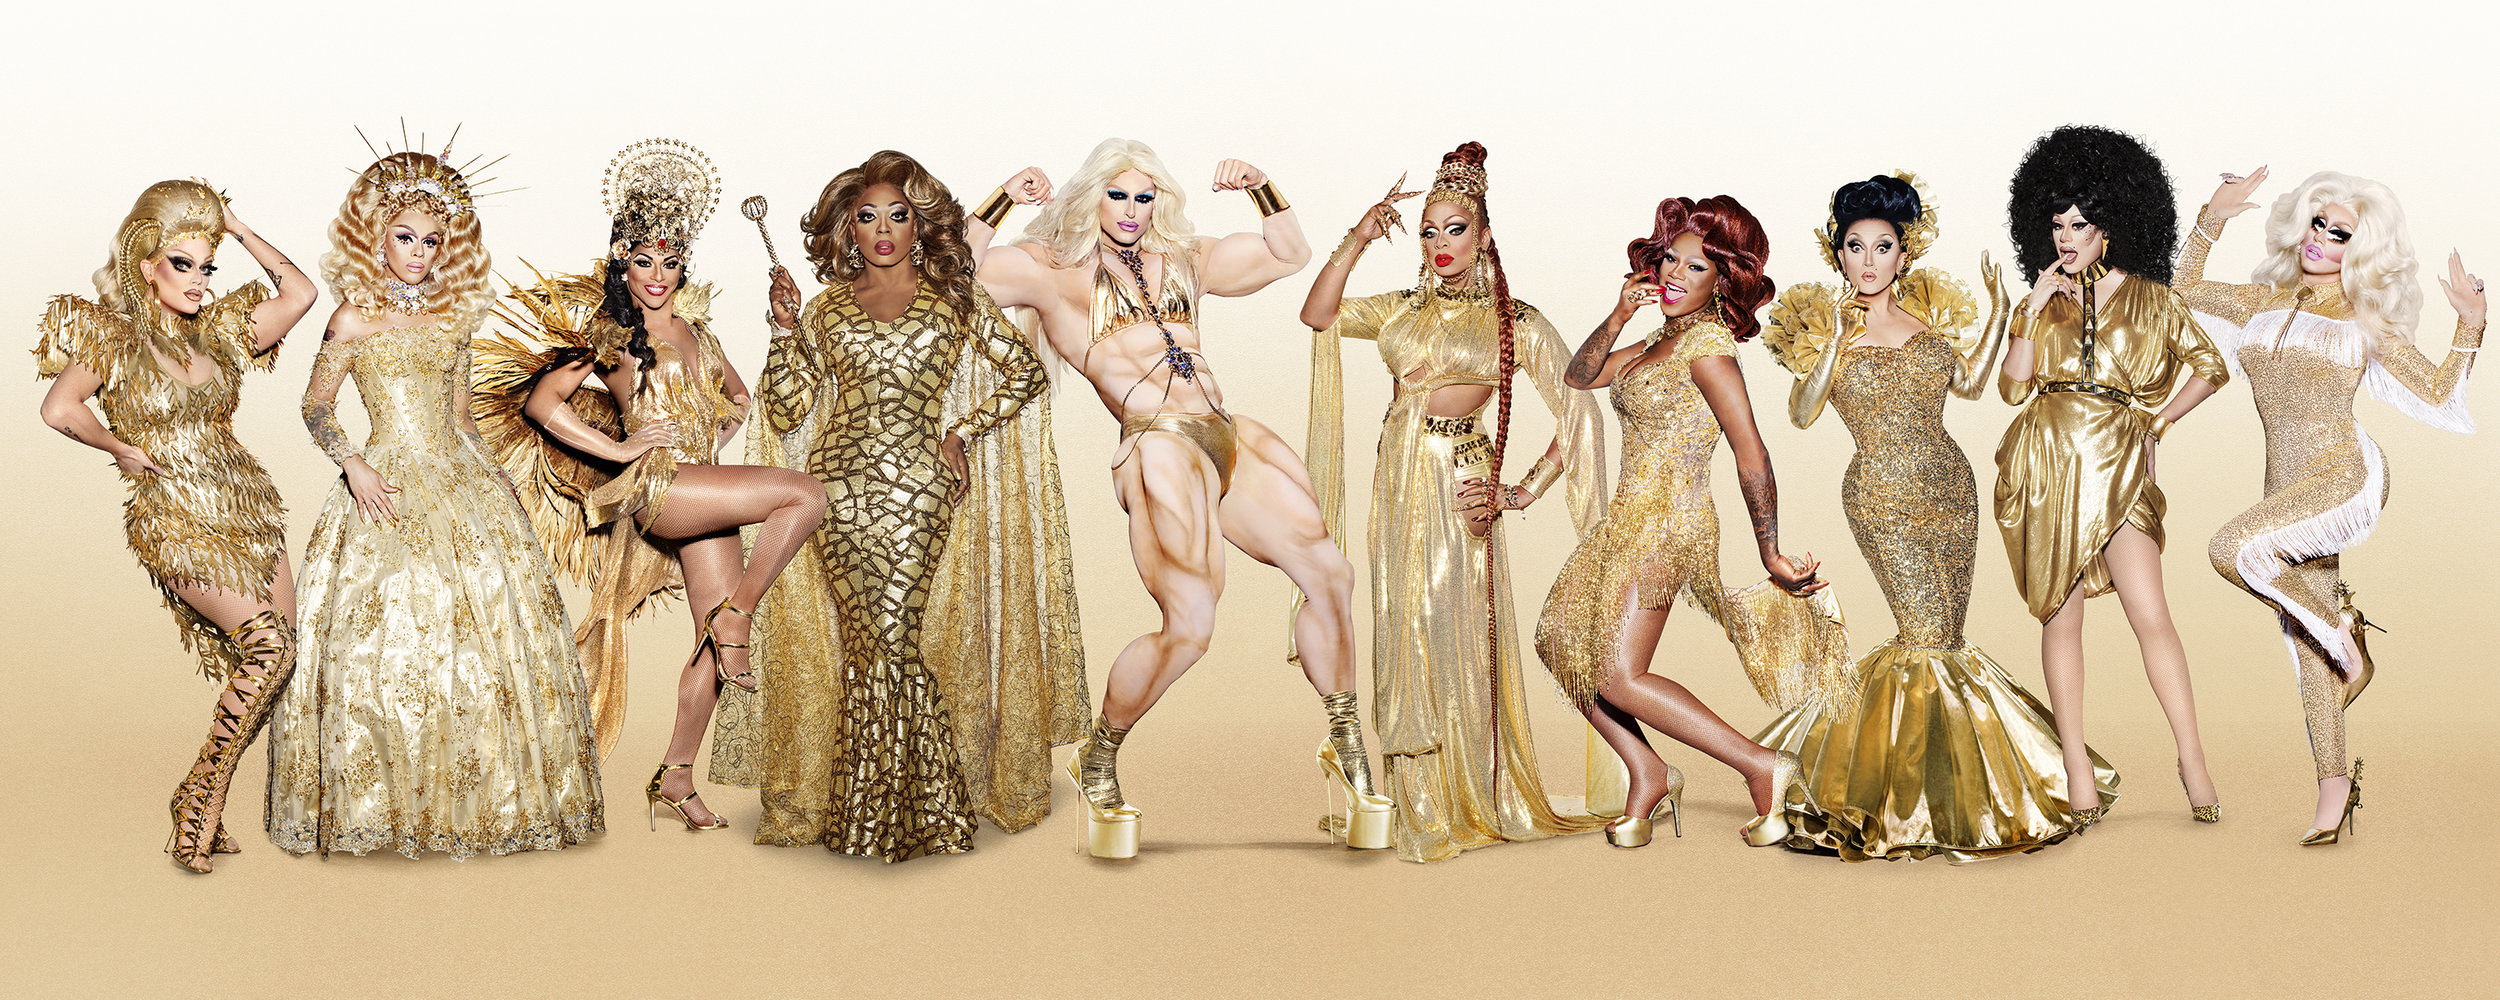 10queens_background_Golden_Wall_RETOUCHED_FLAT_MED.jpg